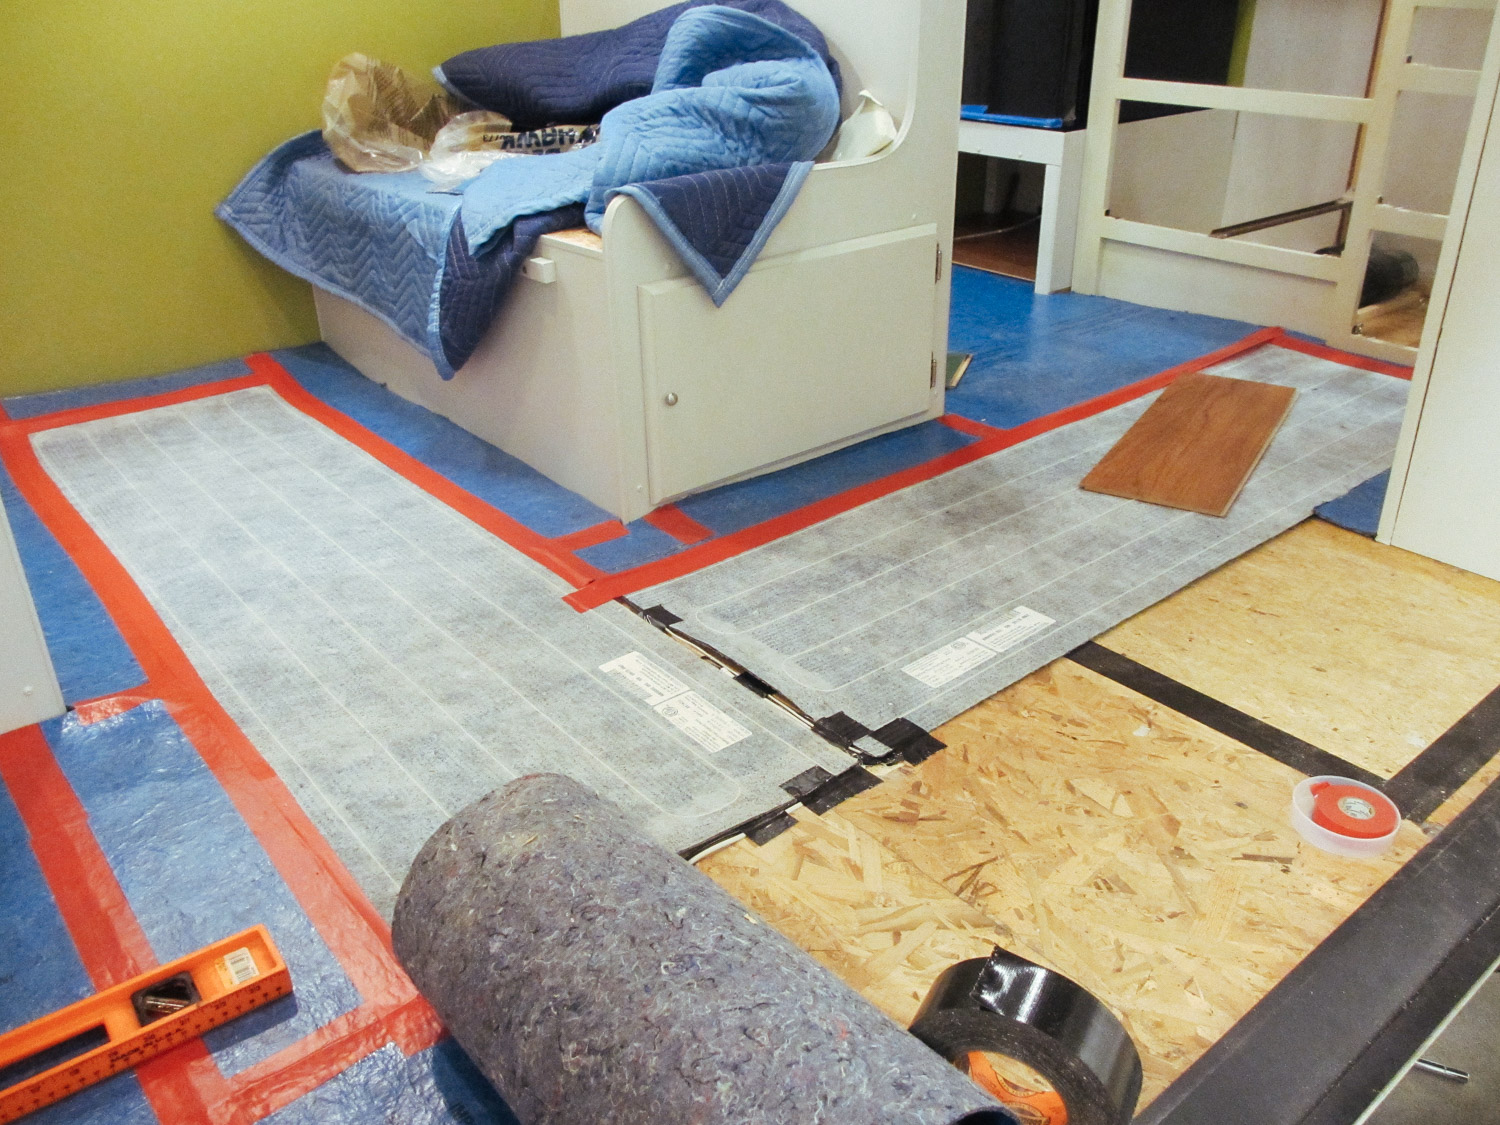 We placed floor heating pads between the dinette seats and in the kitchen area instead of underlayment.